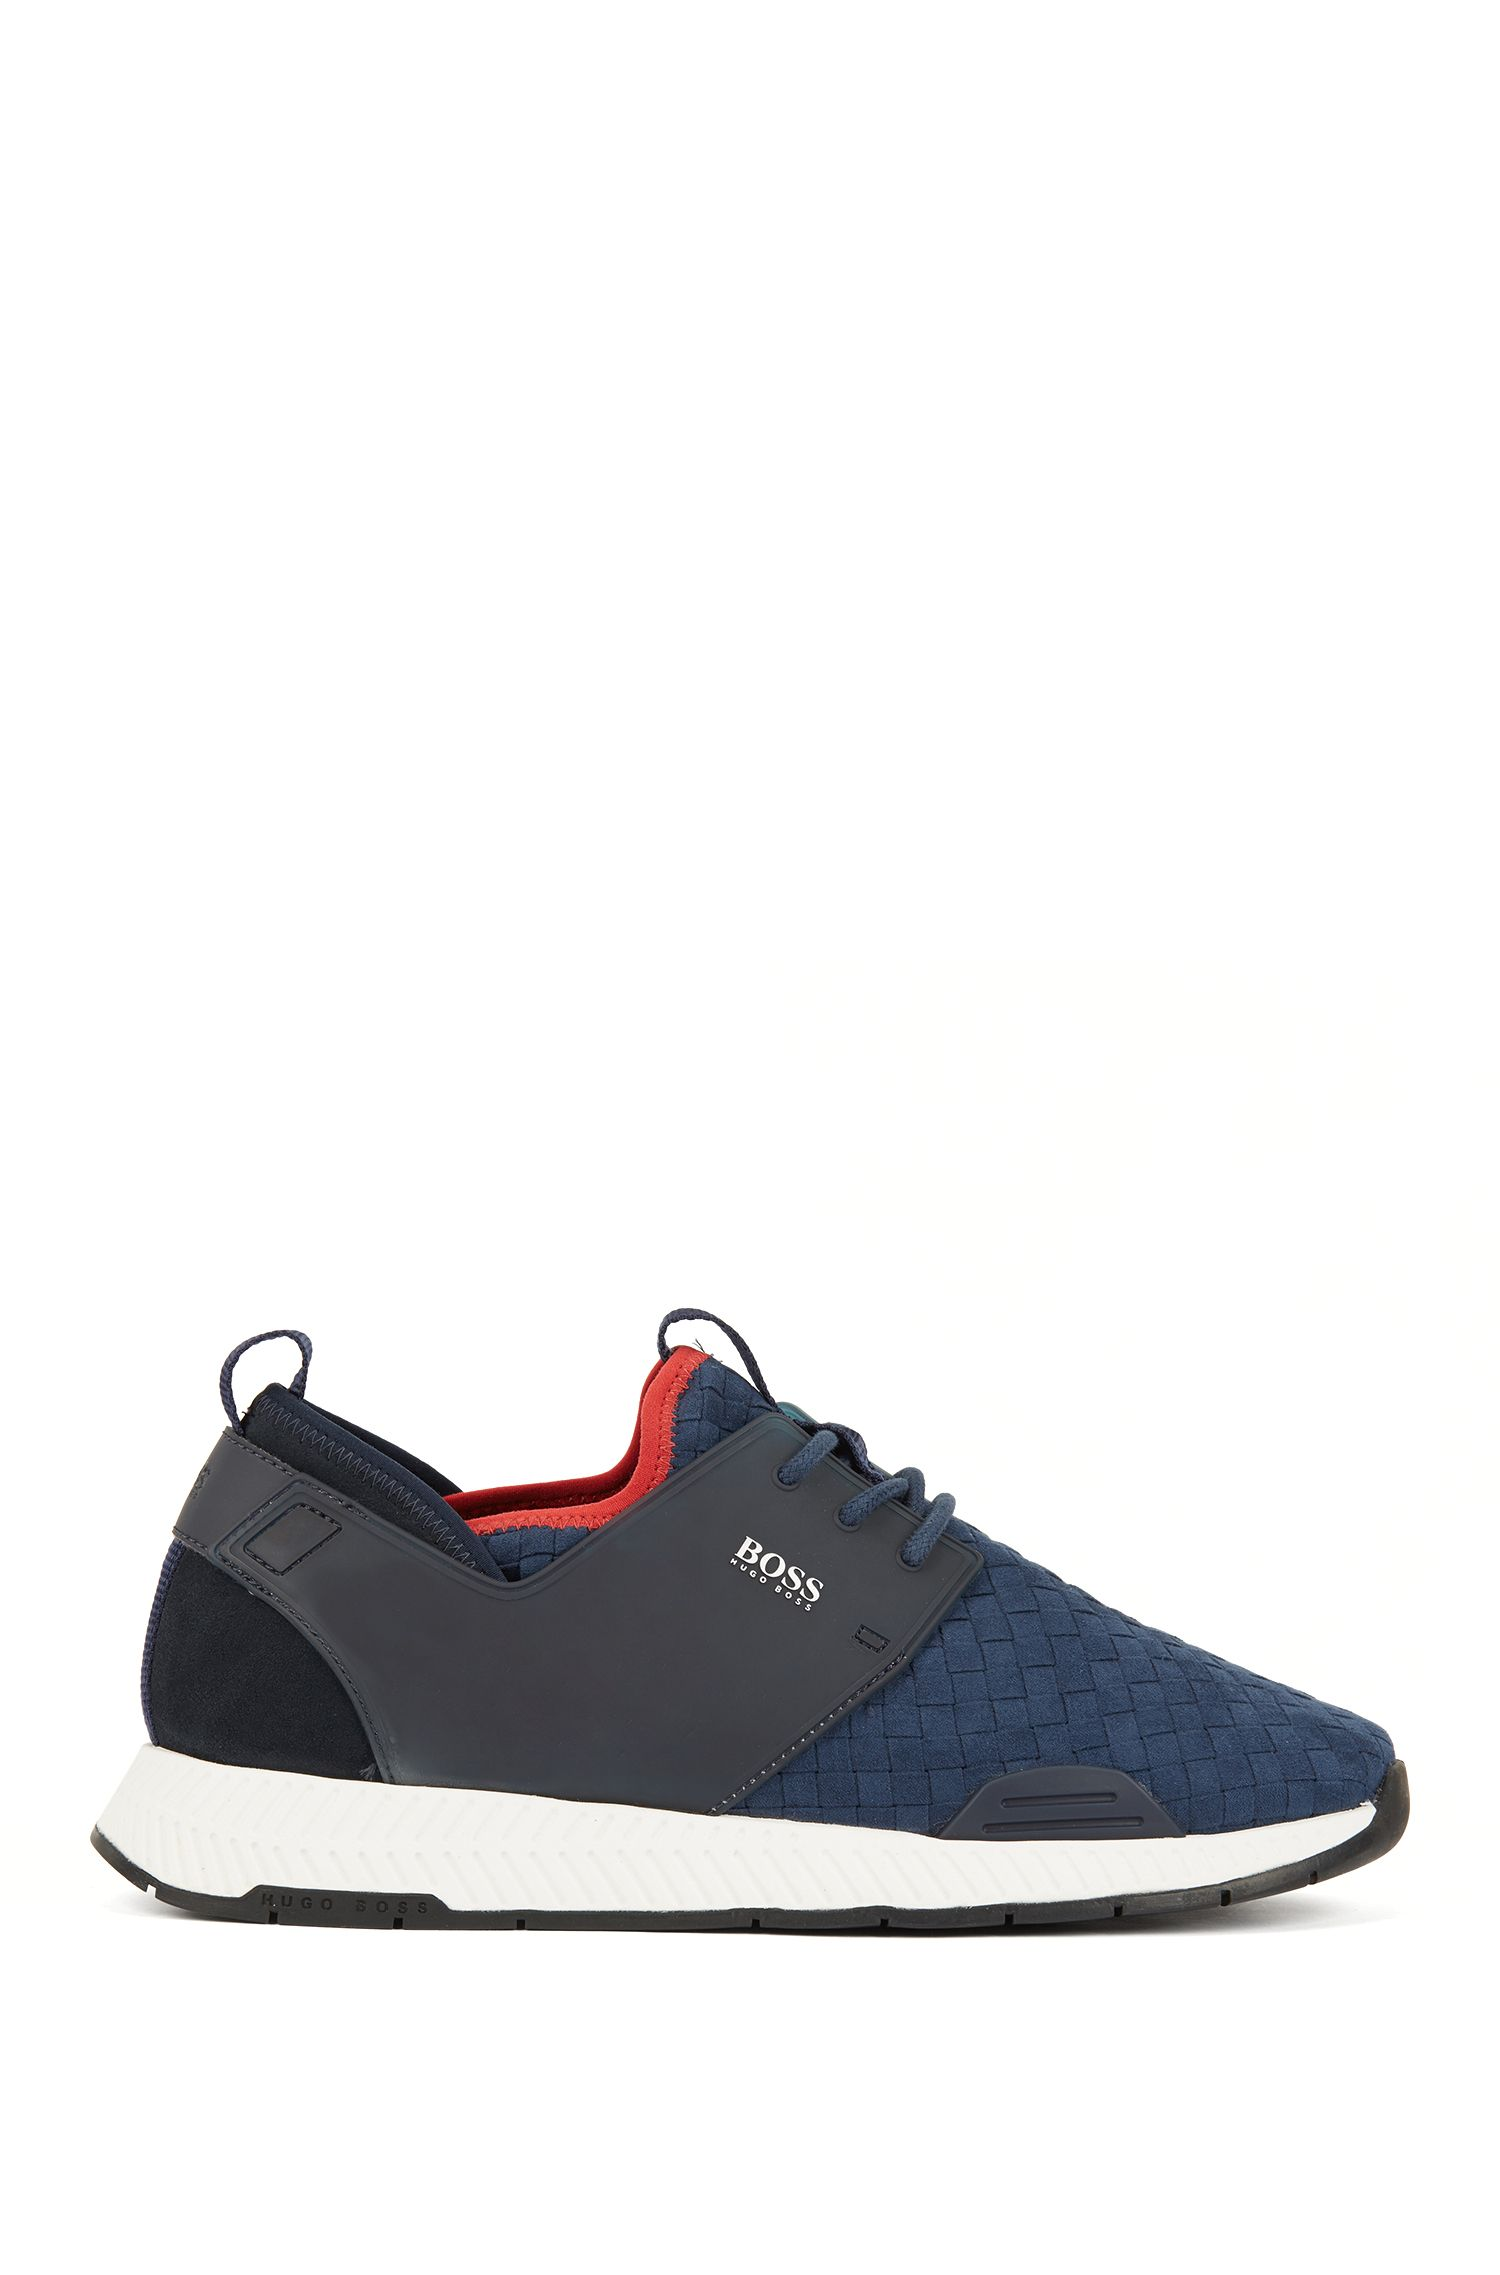 Running-style hybrid sneakers with EVA and rubber sole, Dark Blue